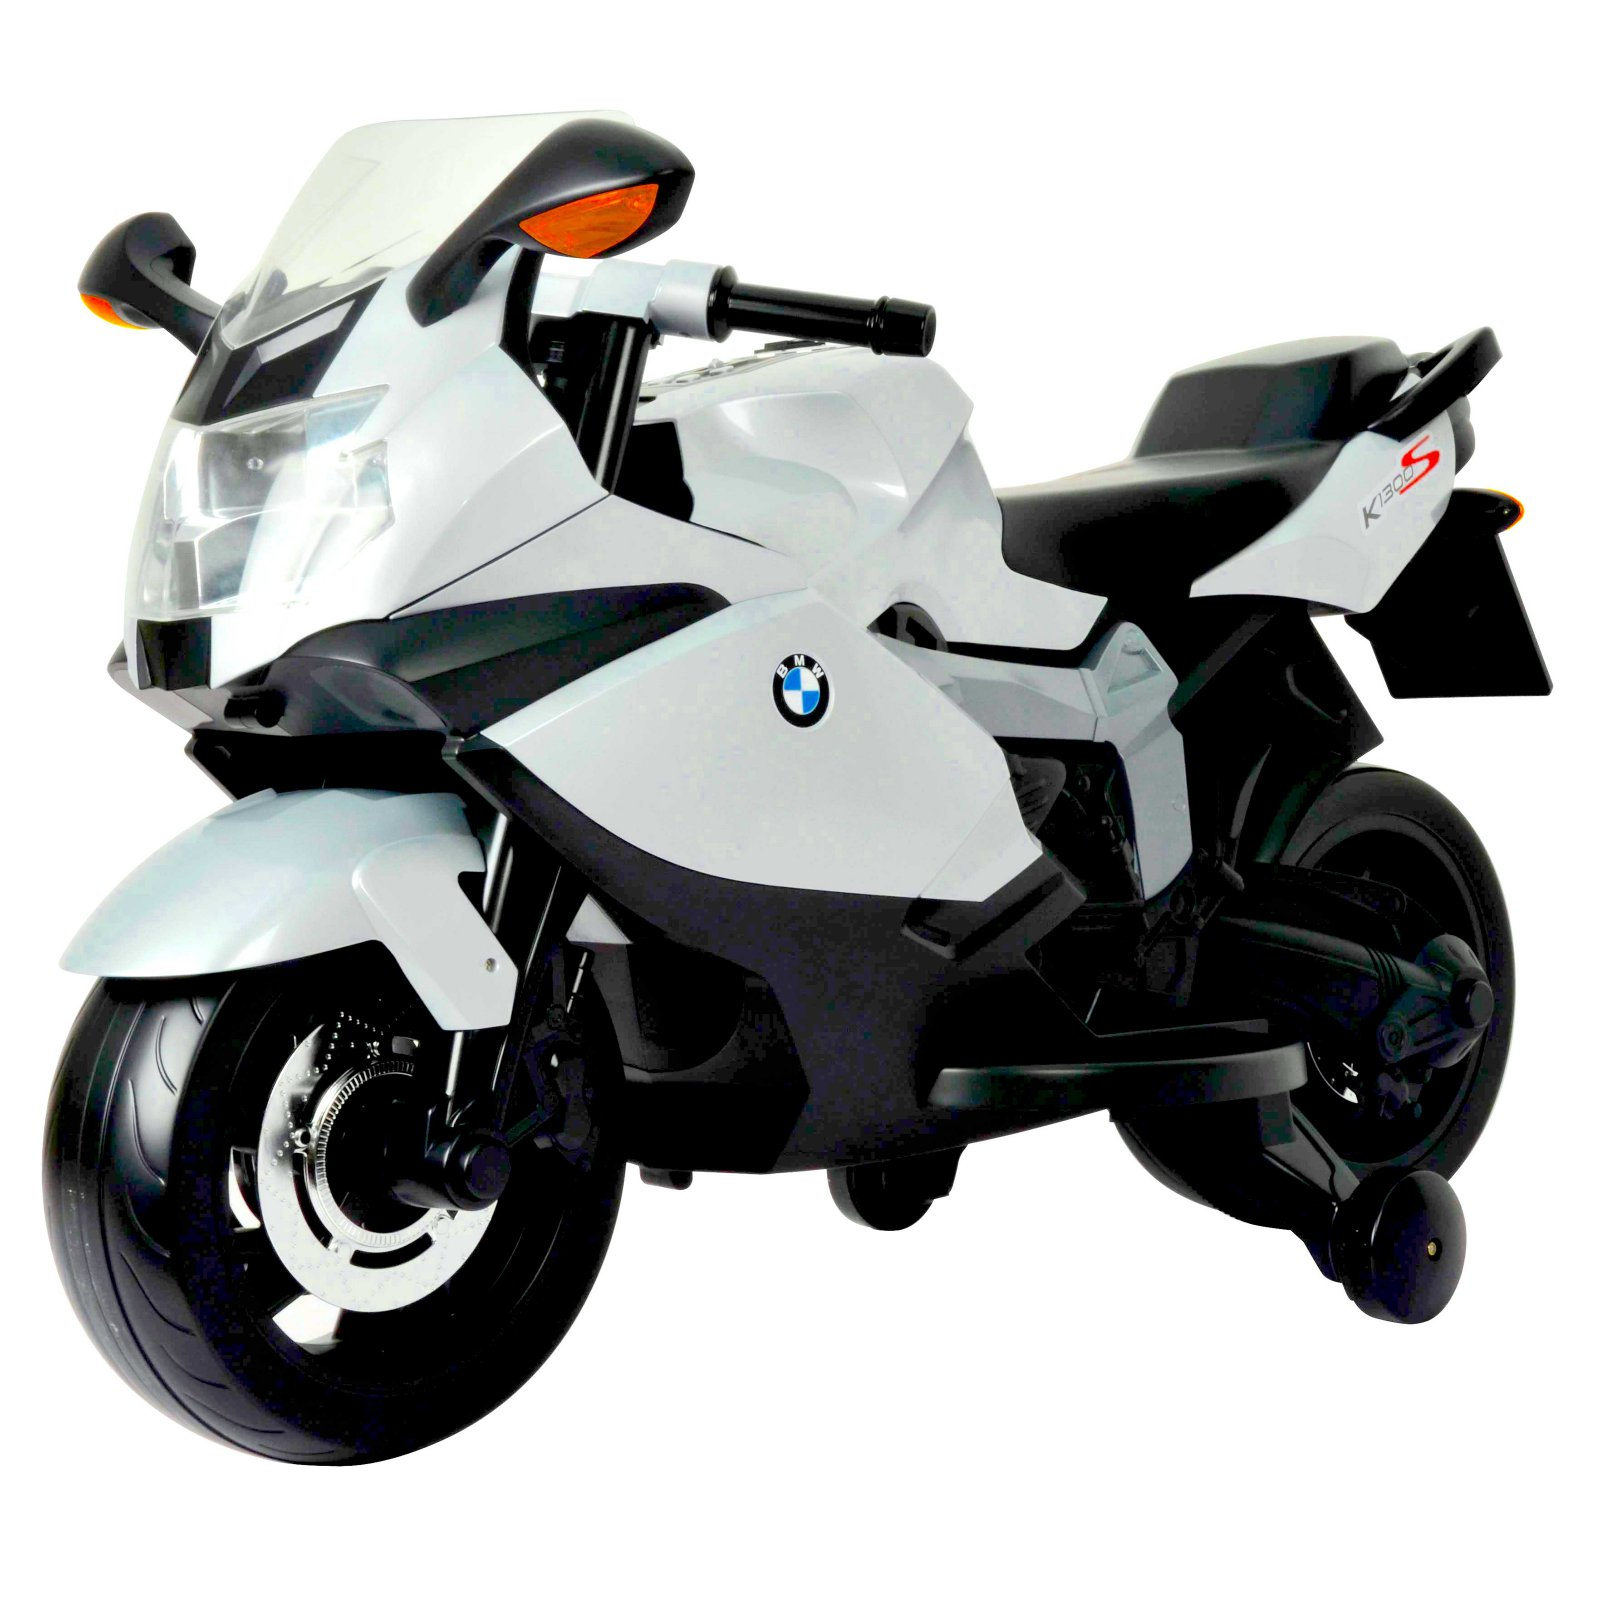 Best Ride On Cars BMW Ride On Motorcycle 12V